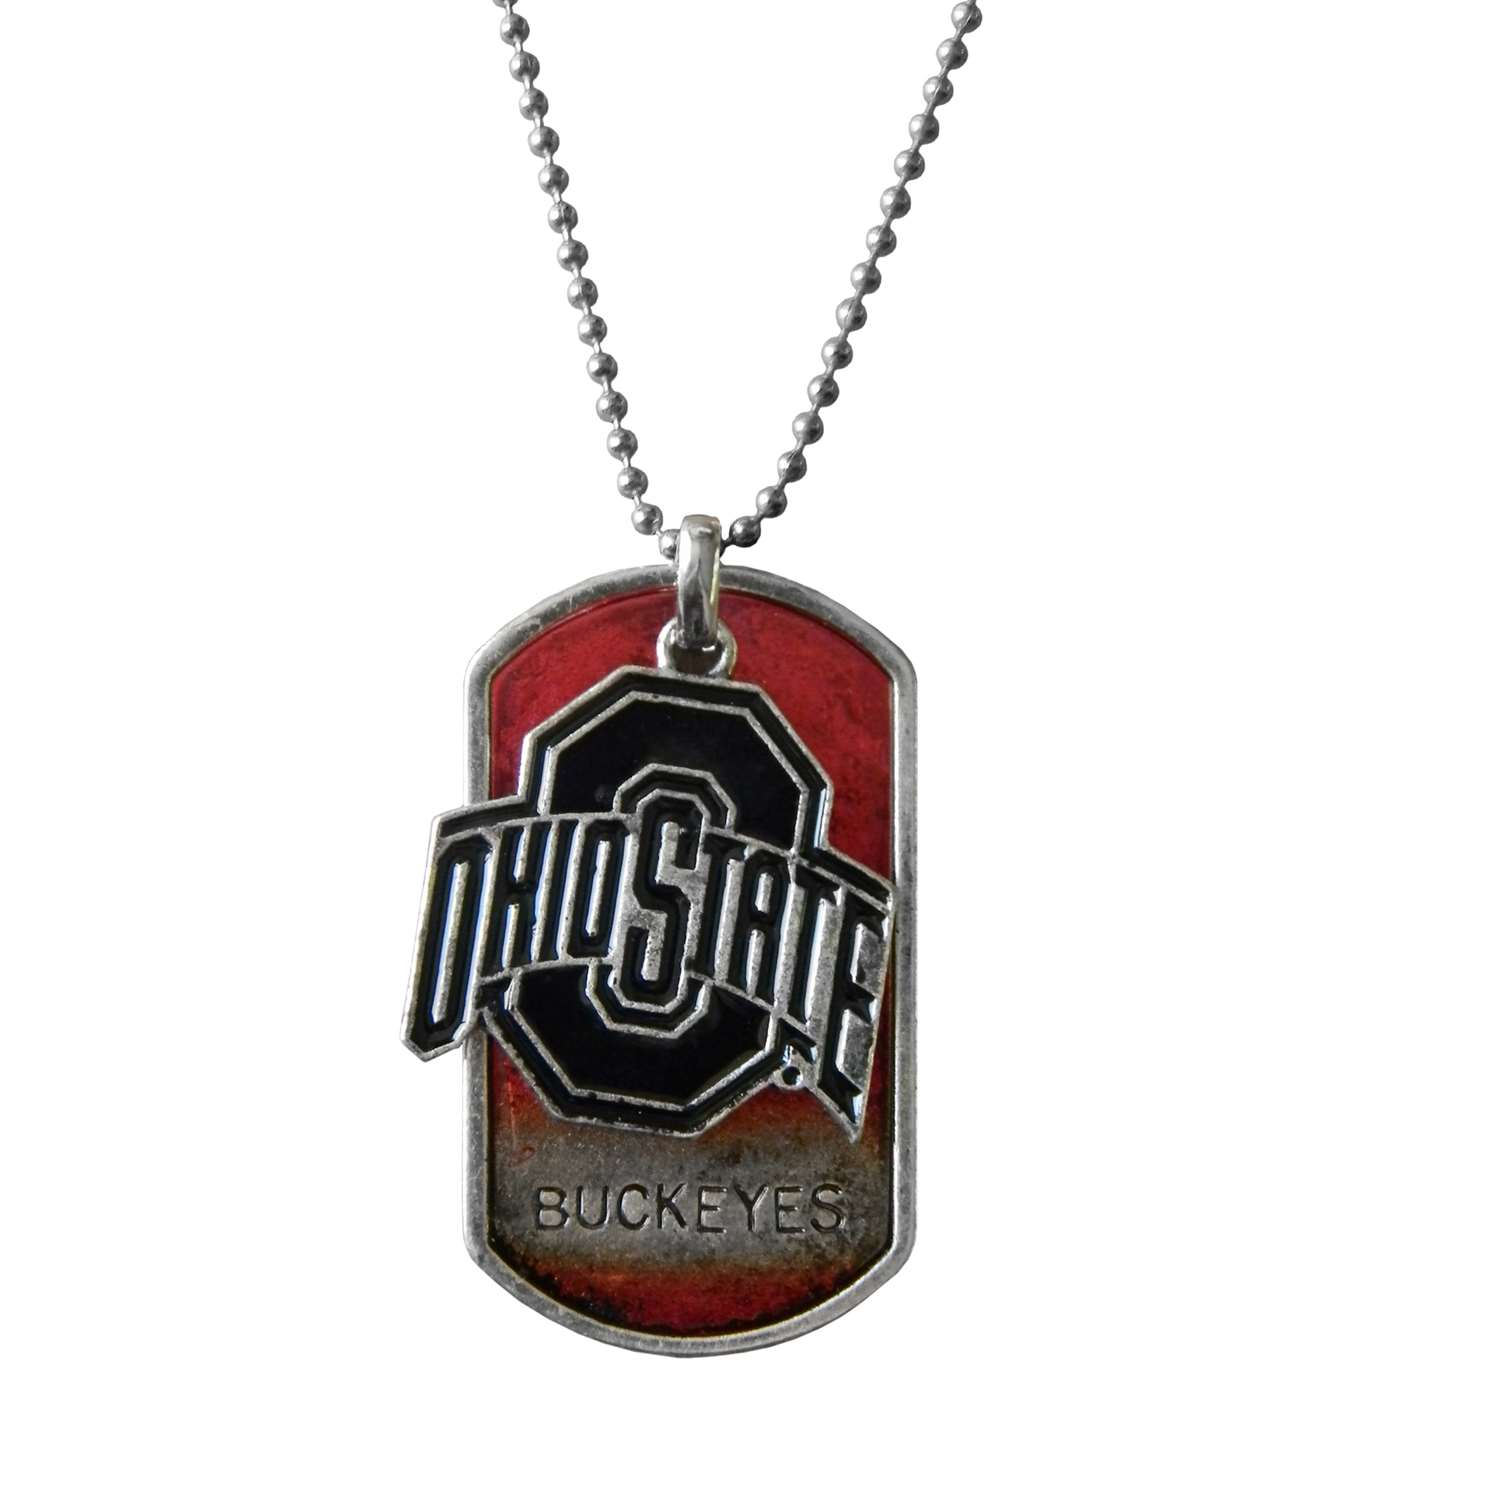 Tennis Gifts Executive Gifts - 100424-ohsu - Ohio State University Dog Tag Charm 100424-OHSU